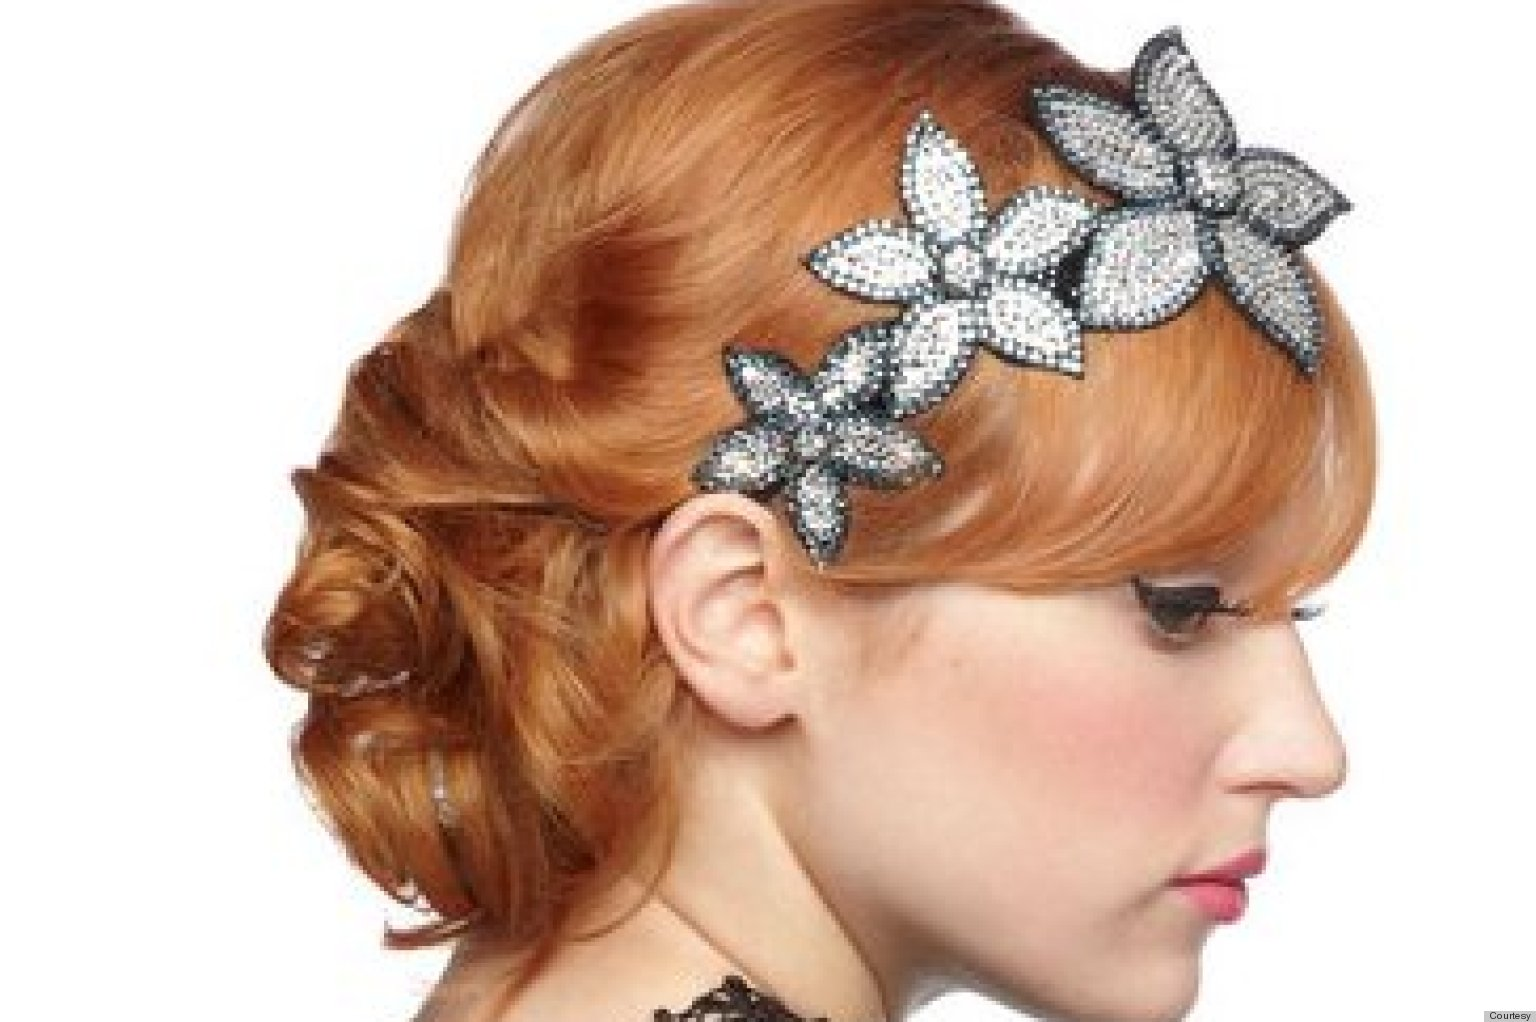 Vintage-Inspired Hair Accessories With 1920s Flair (PHOTOS)